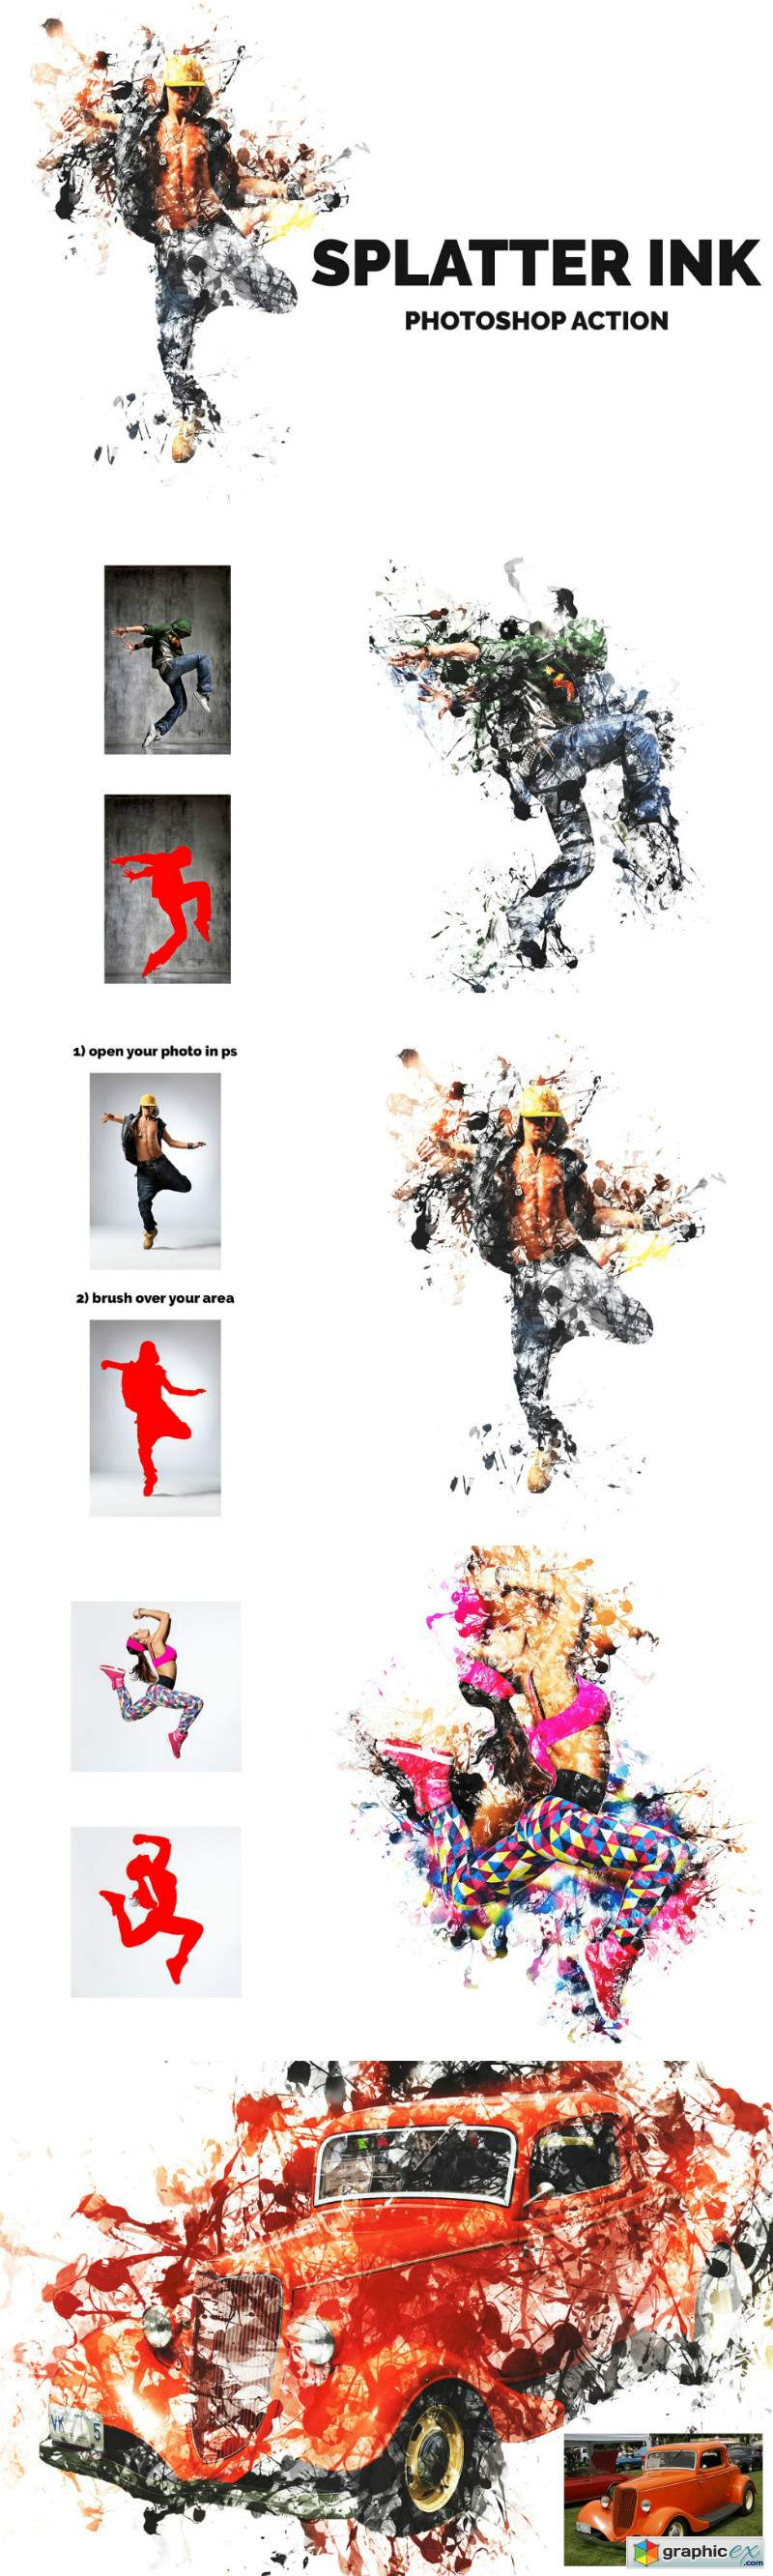 Splatter Ink Photoshop Action 3593546